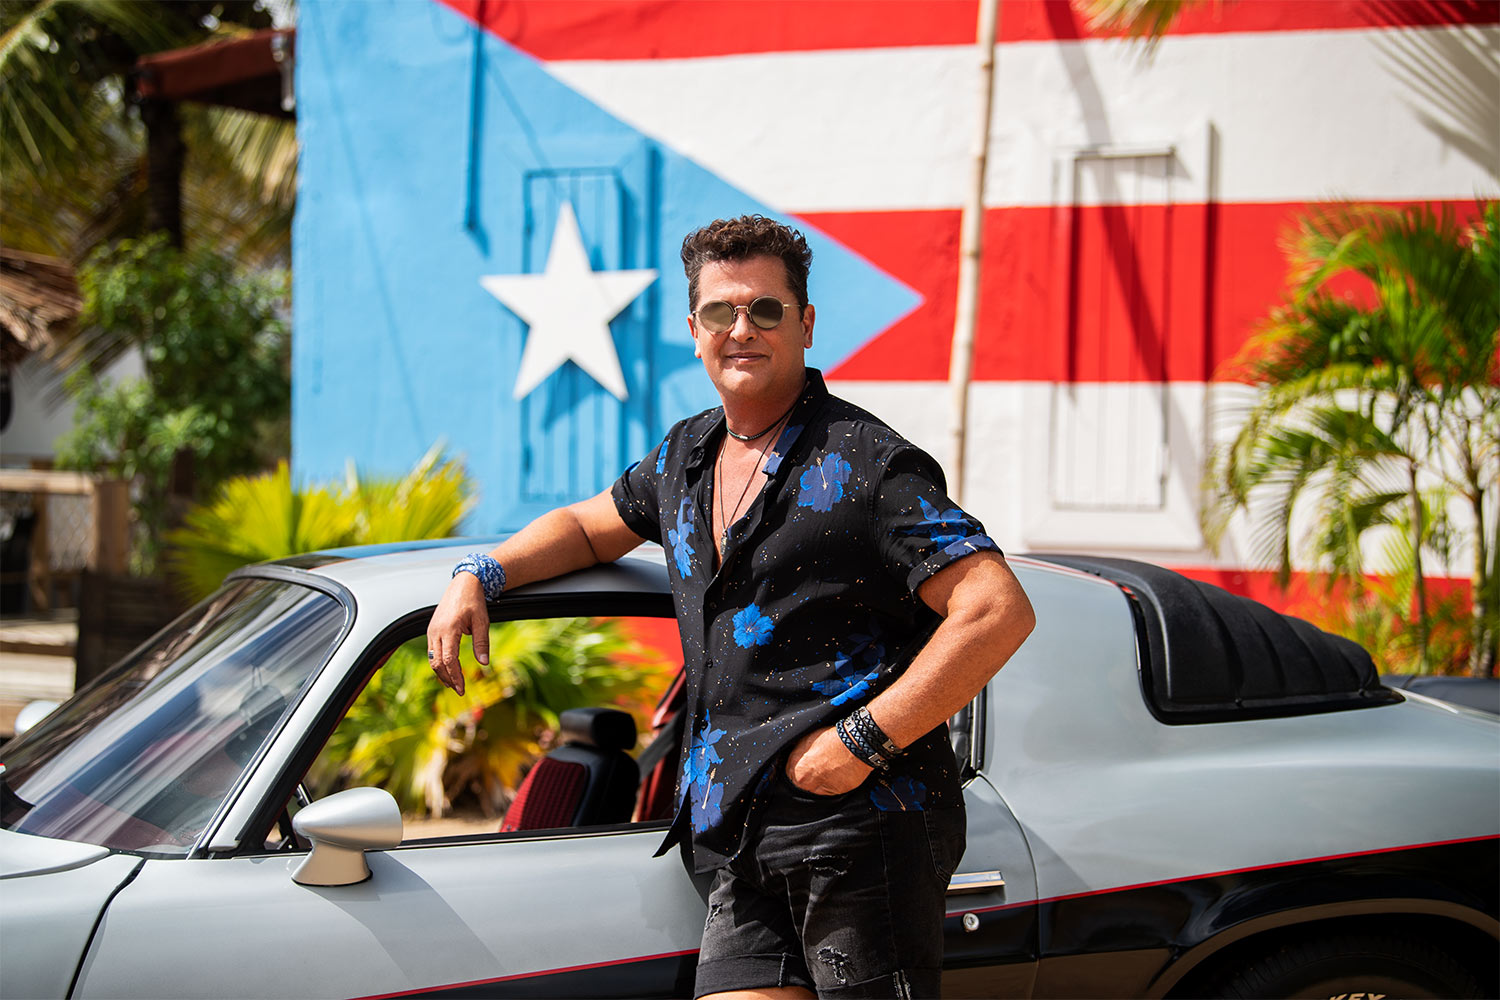 Carlos Vives Talks New Song with Ricky Martin About 'Magical' City of San Juan, Puerto Rico